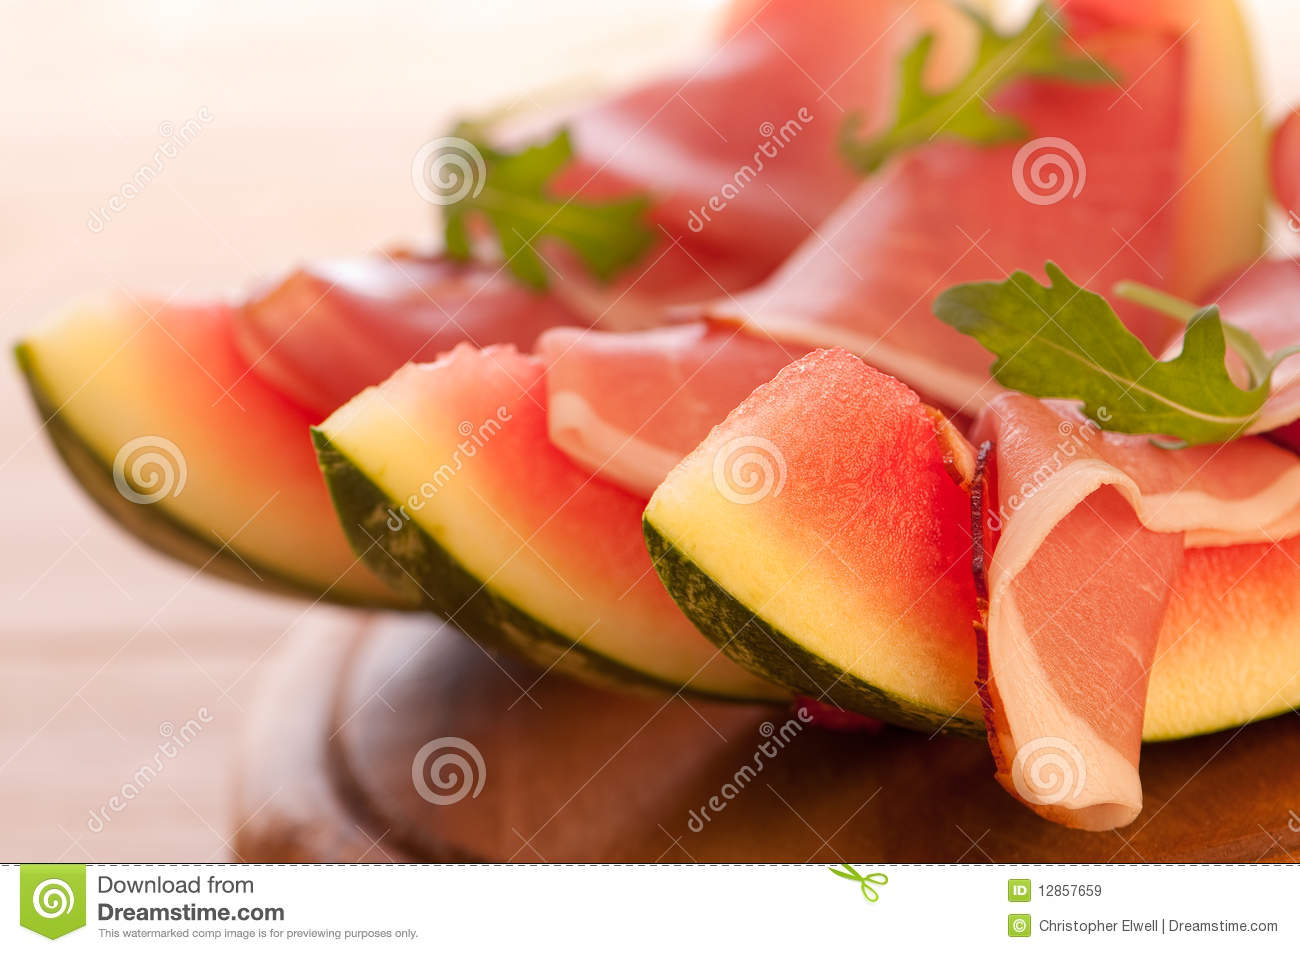 Melon With Parma Ham Royalty Free Stock Images - Image: 12857659